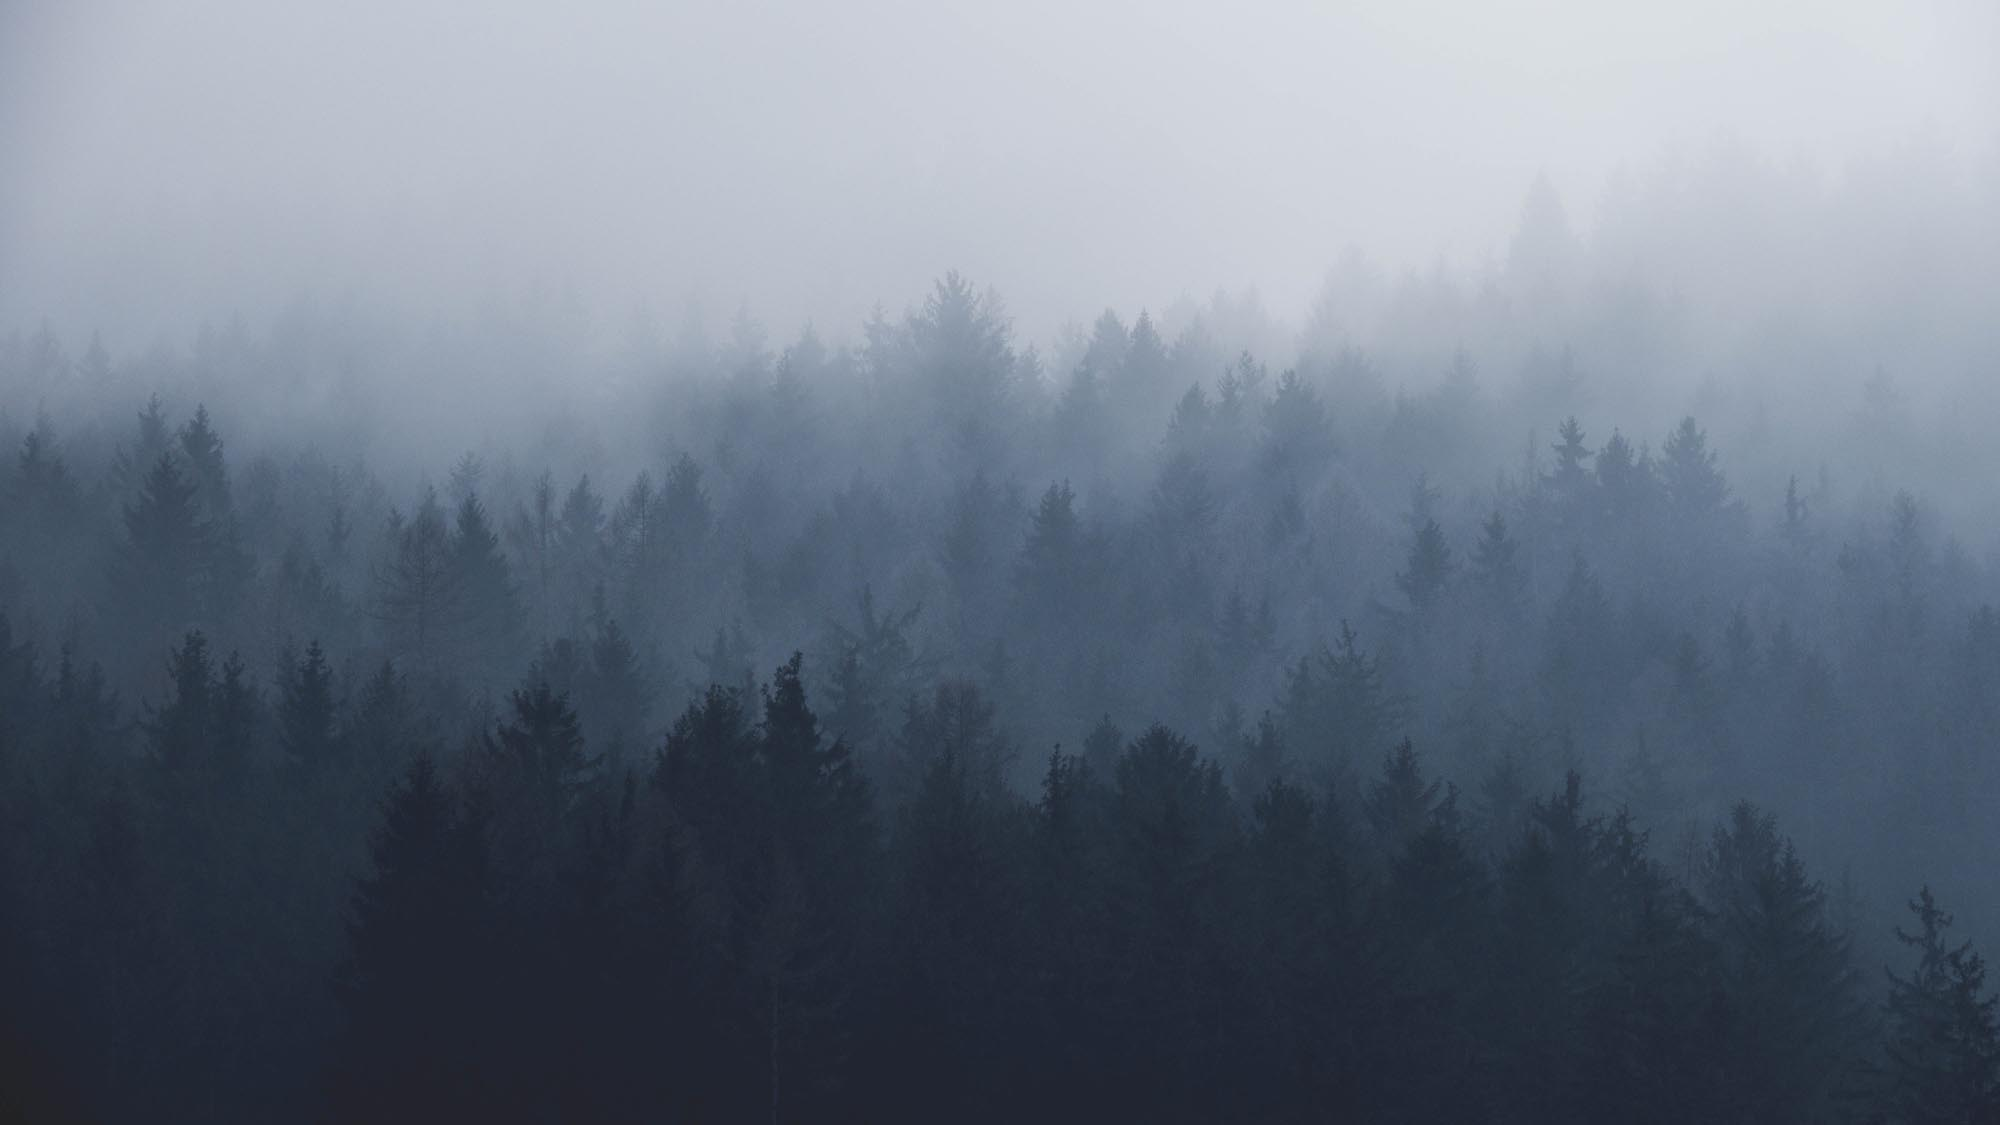 Forest in a fog.